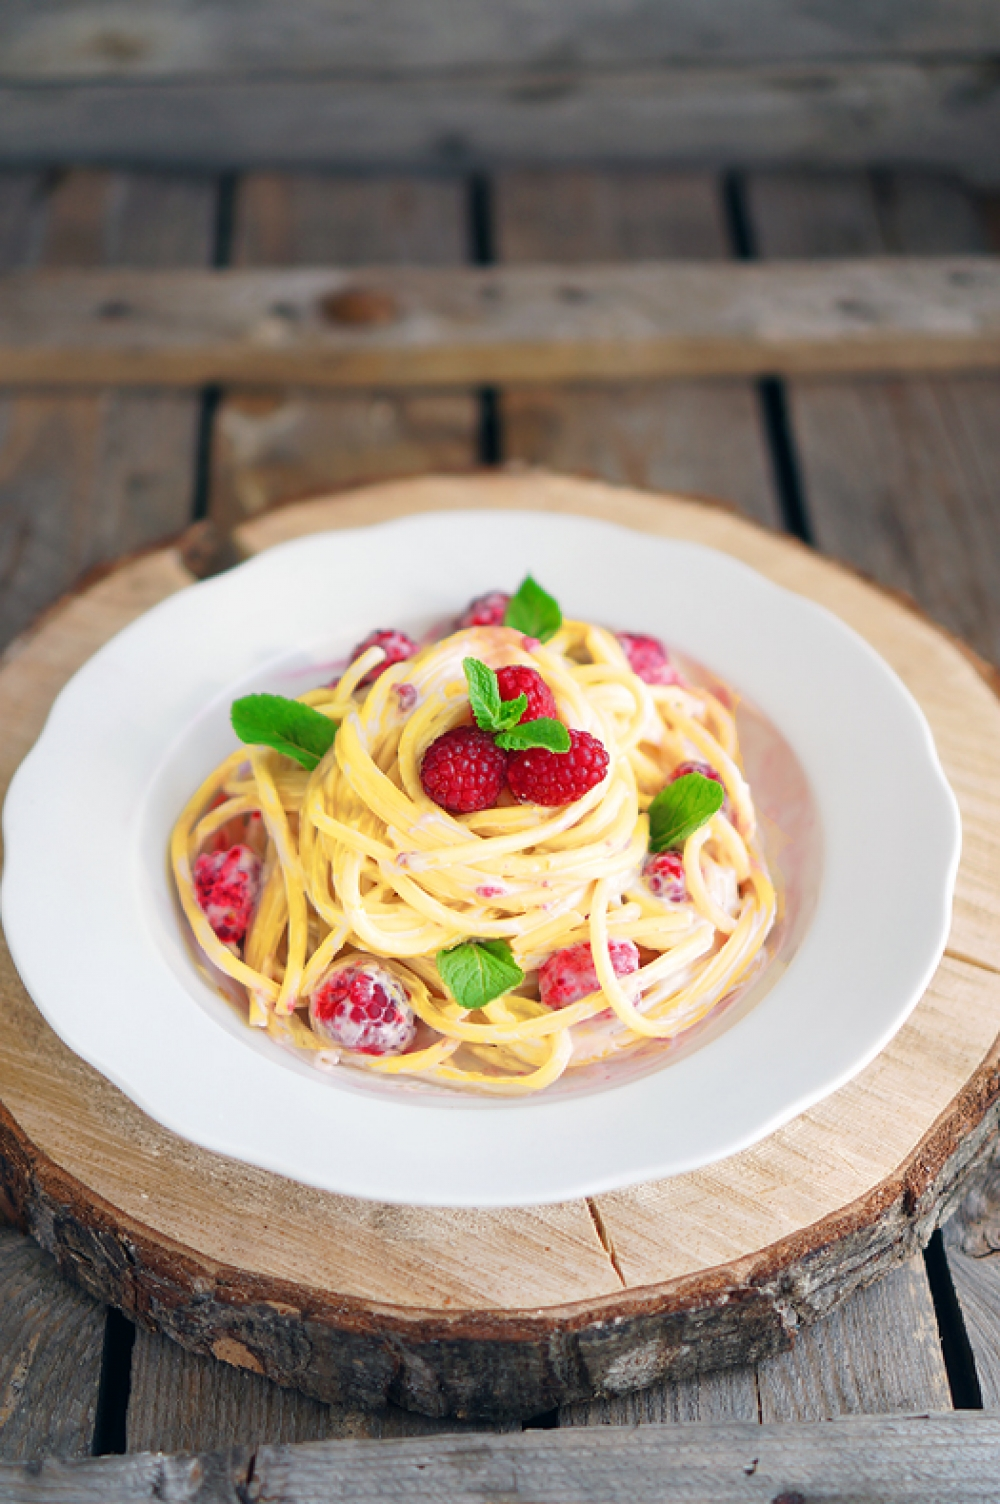 Bucatini with cream sauce and raspberries